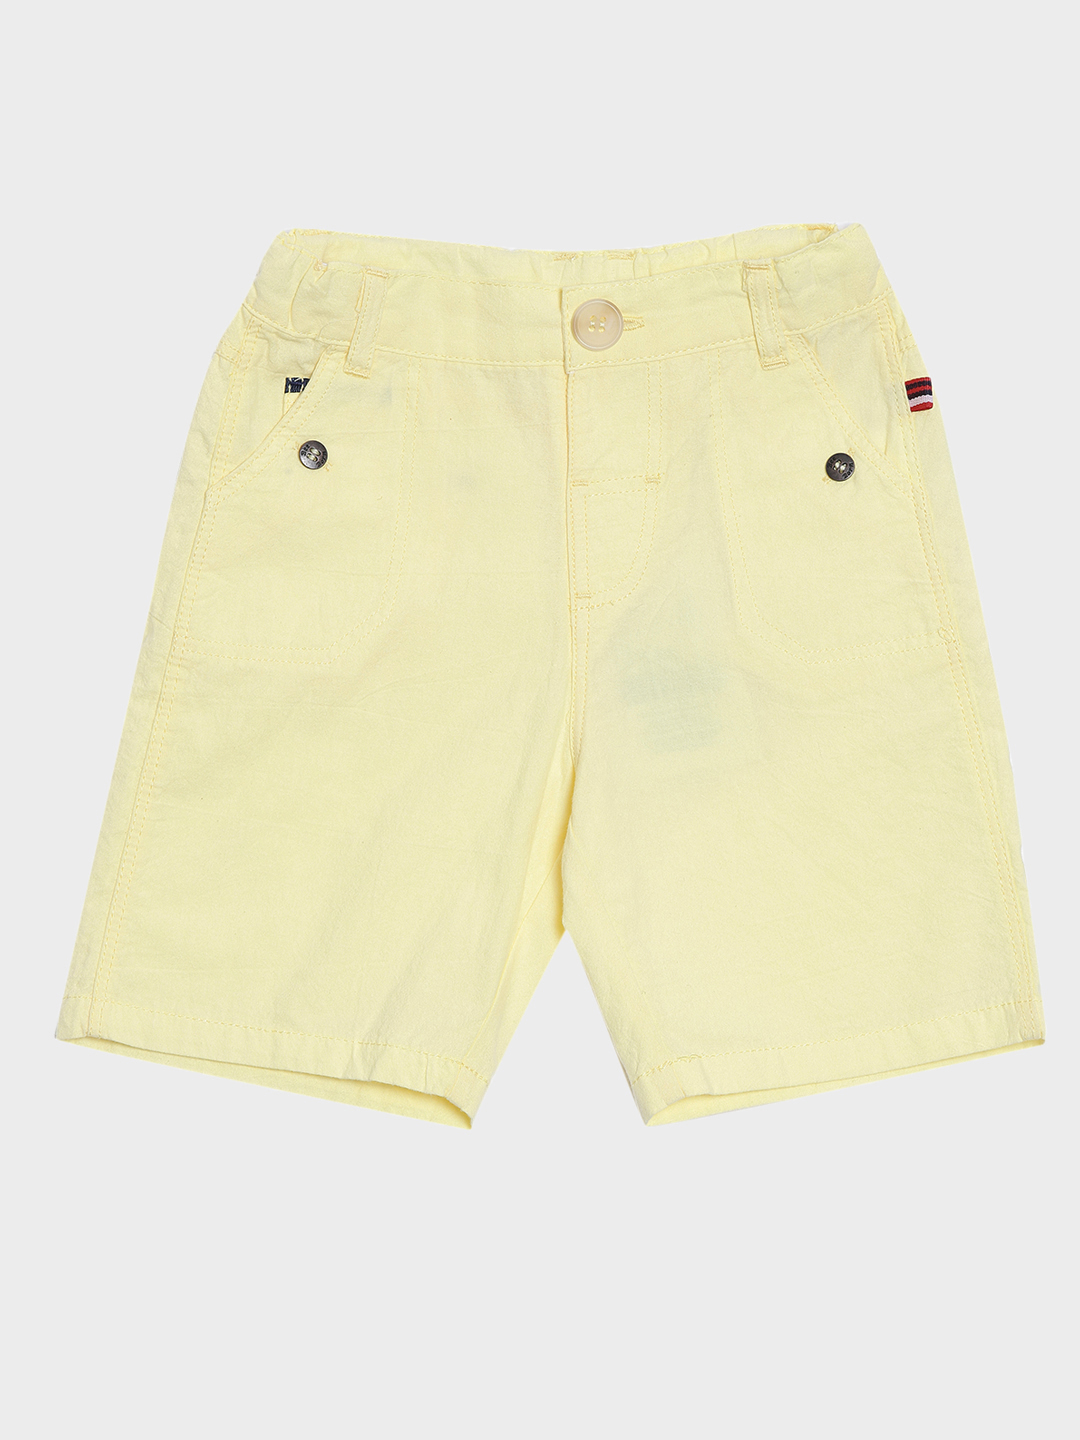 Nuberry | Nuberry Cotton Solid Kids Boys Shorts